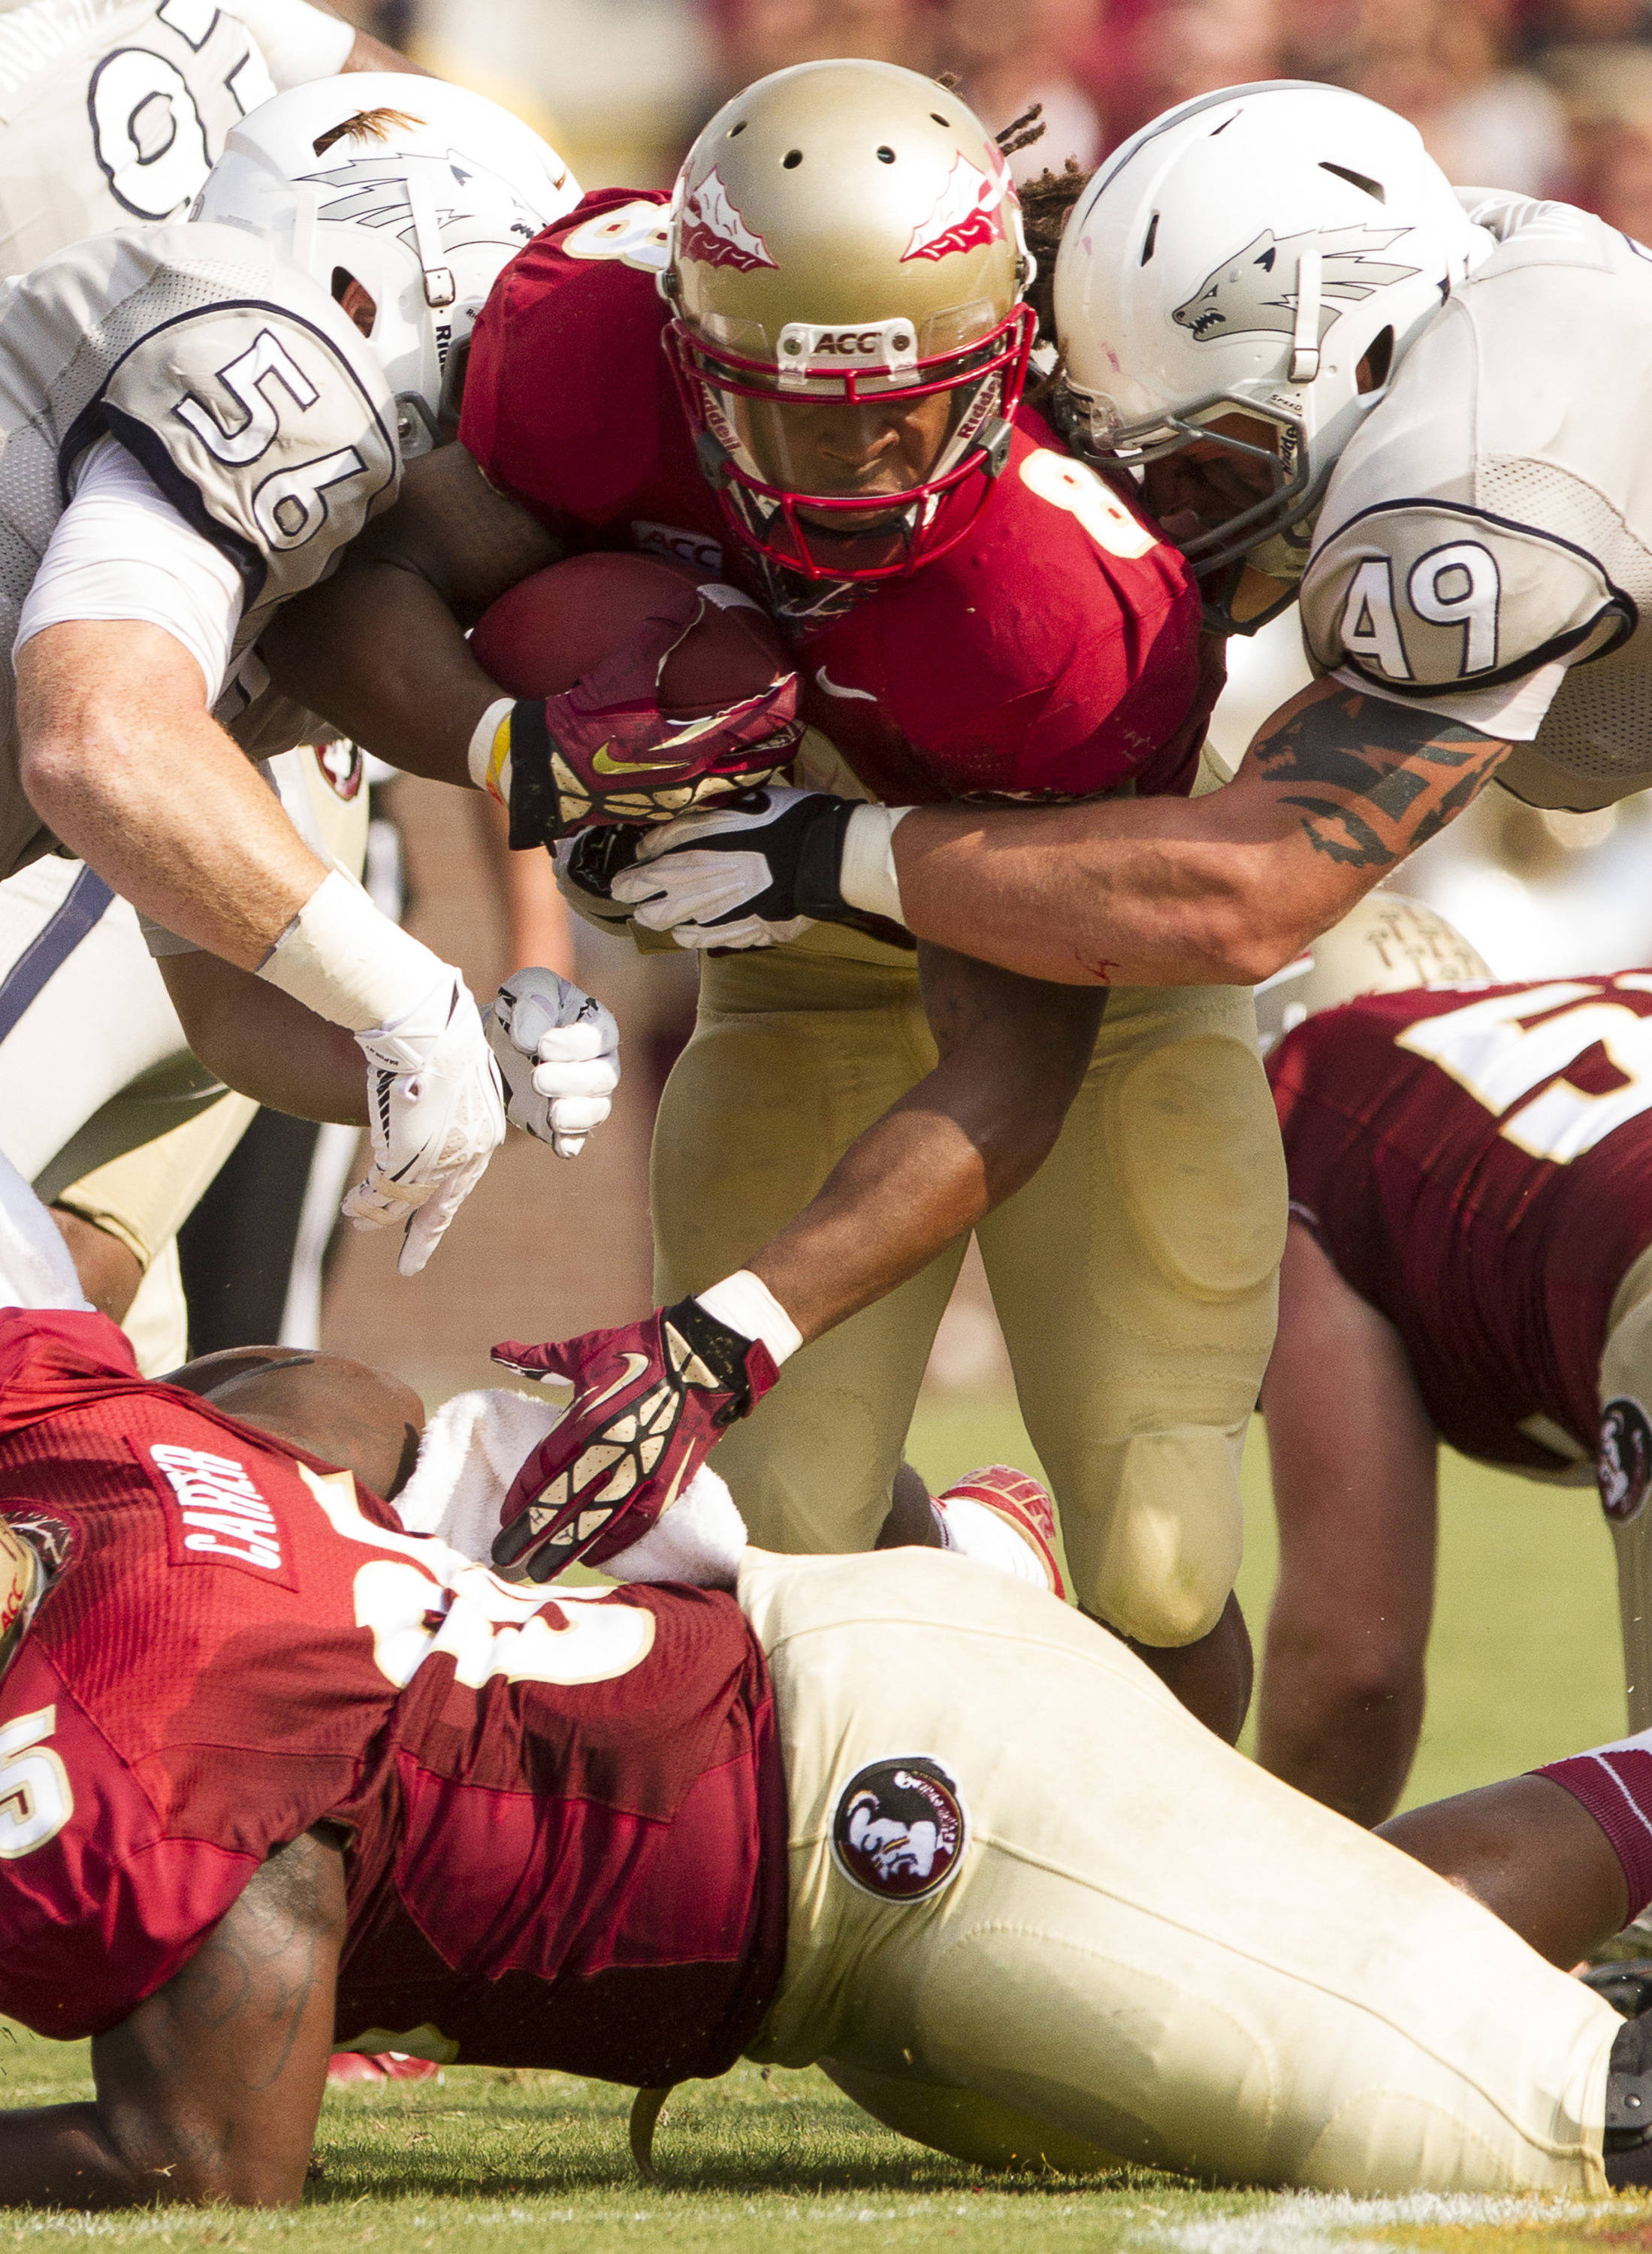 Devonta Freeman (8) carries the ball during FSU's 62-7 win over Nevada on Saturday, Sept 14, 2013 in Tallahassee, Fla.